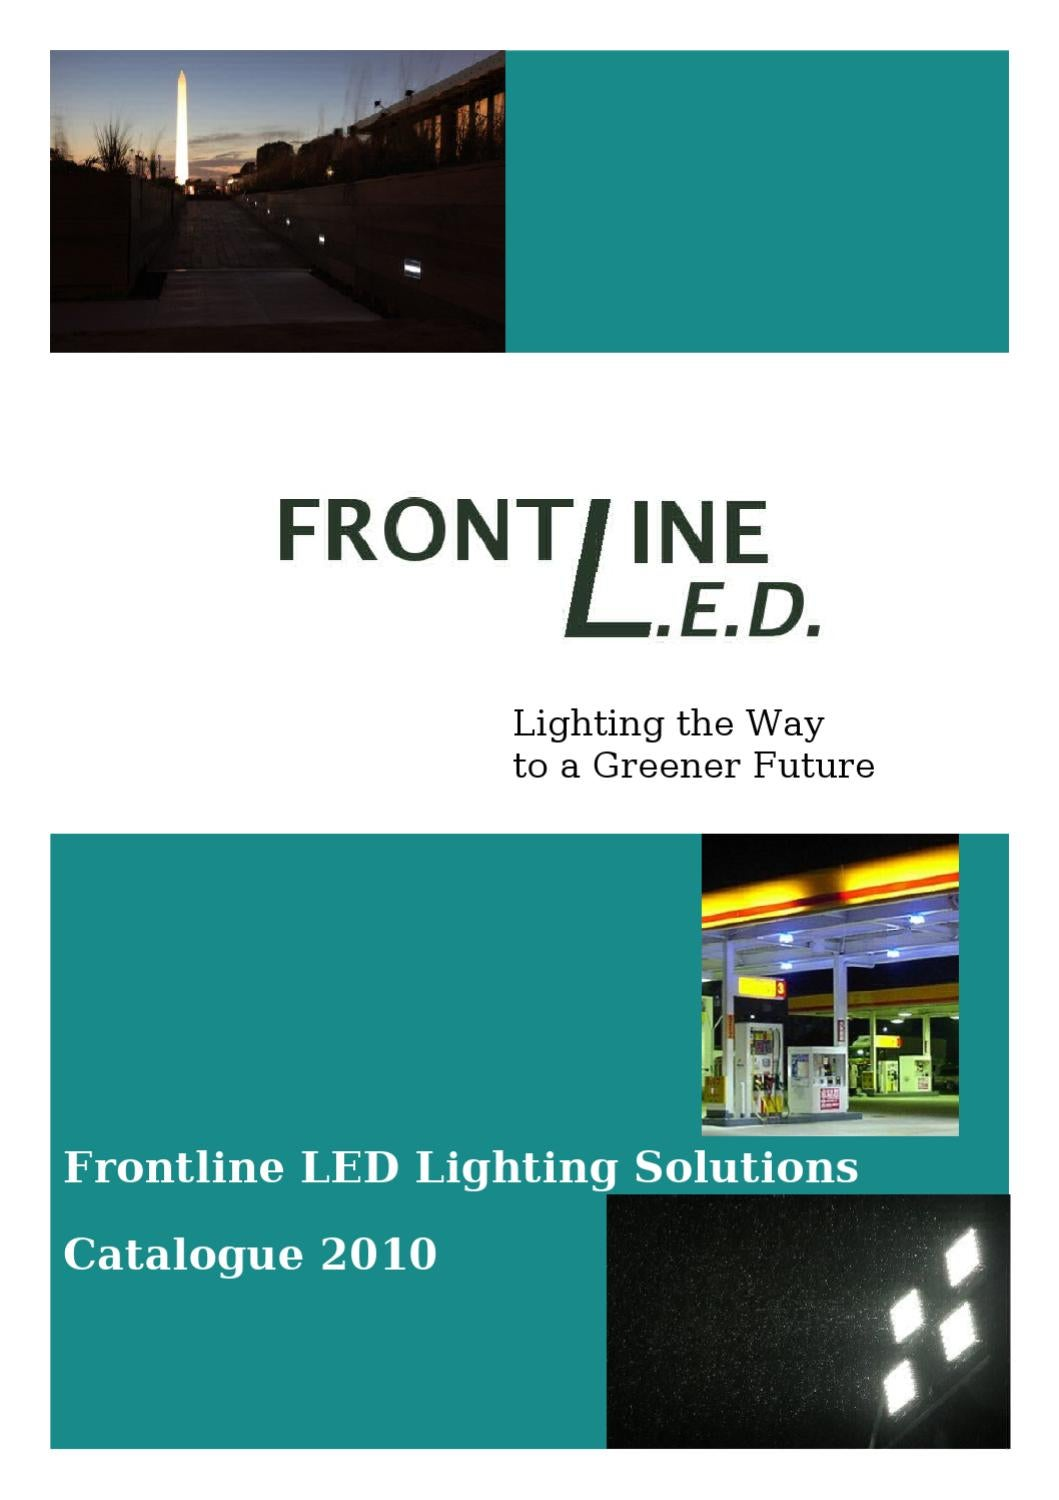 Frontline LED Winter Catalogue 2010 by Cian O Flaherty - issuu